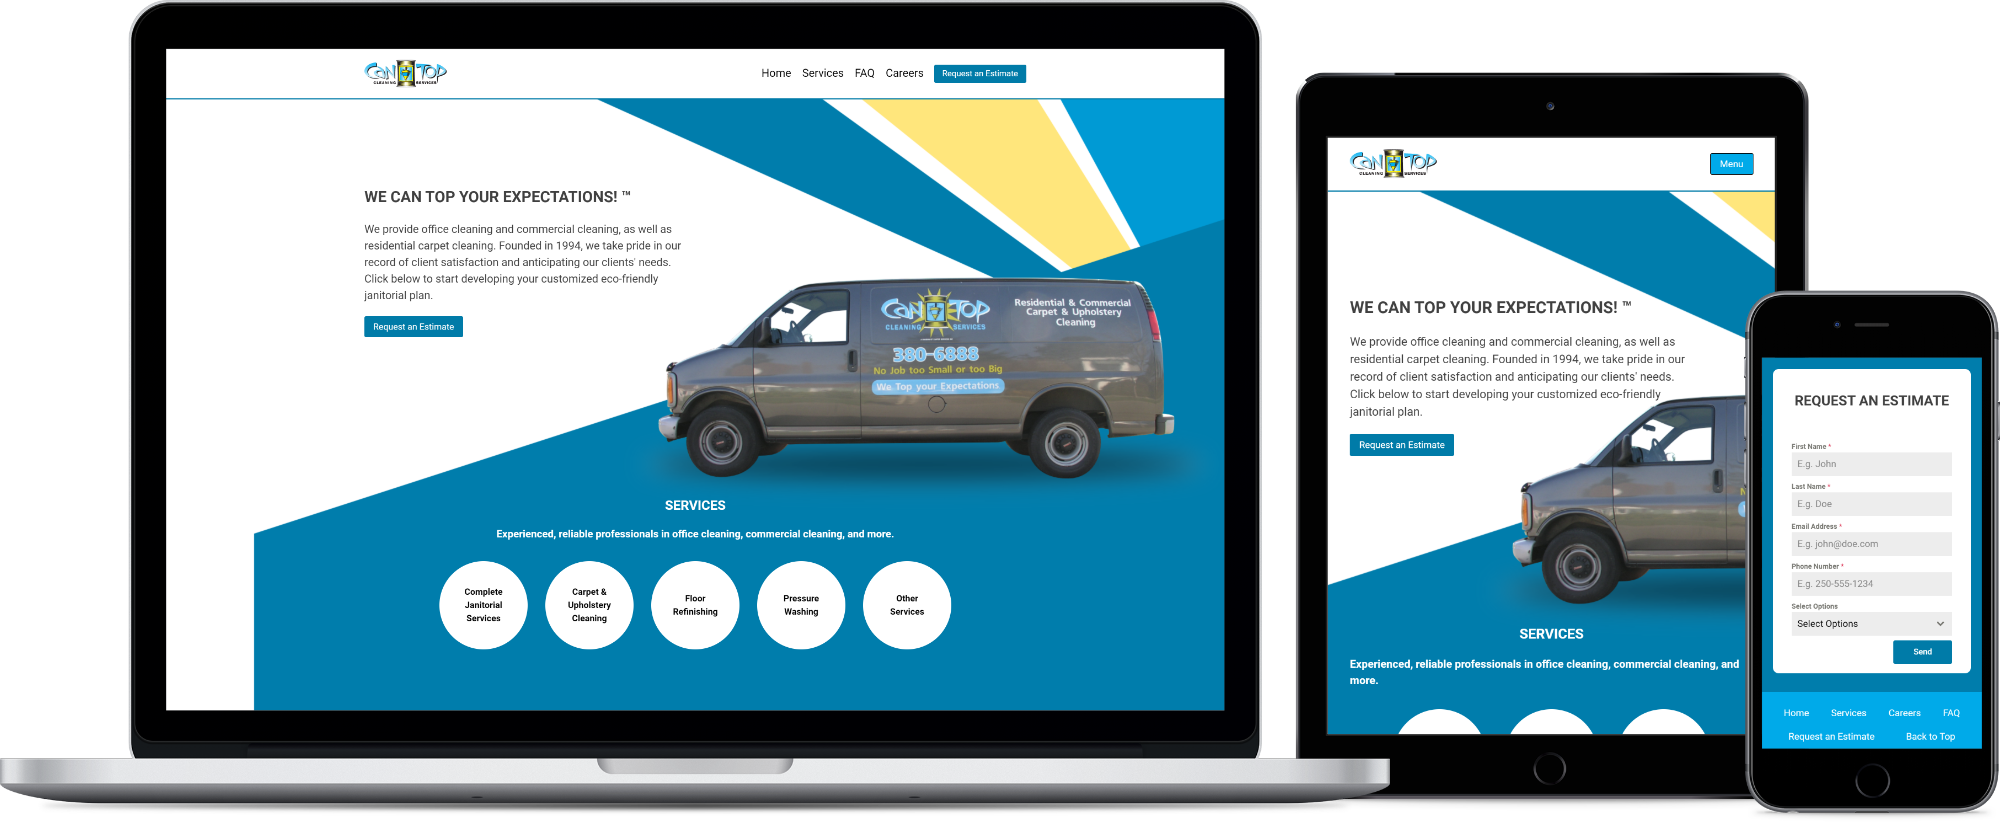 Cantop Cleaning Services mockup